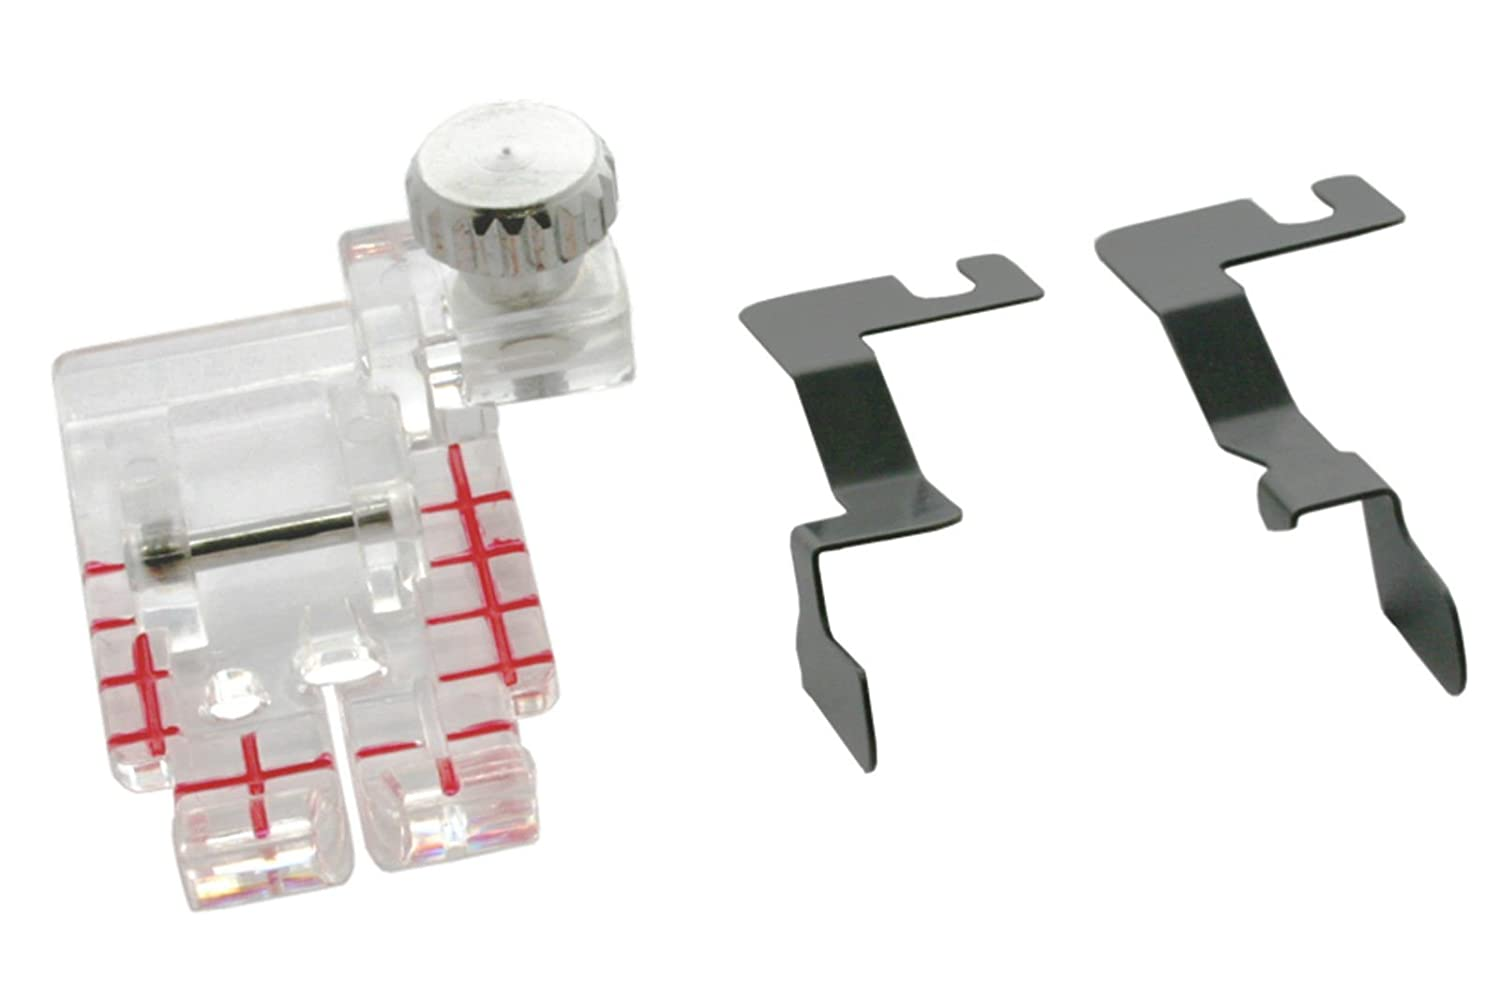 Janome Sewing Machine Clear View Quilting Foot And Guide Set (Part No. 200449001 Category B/C)